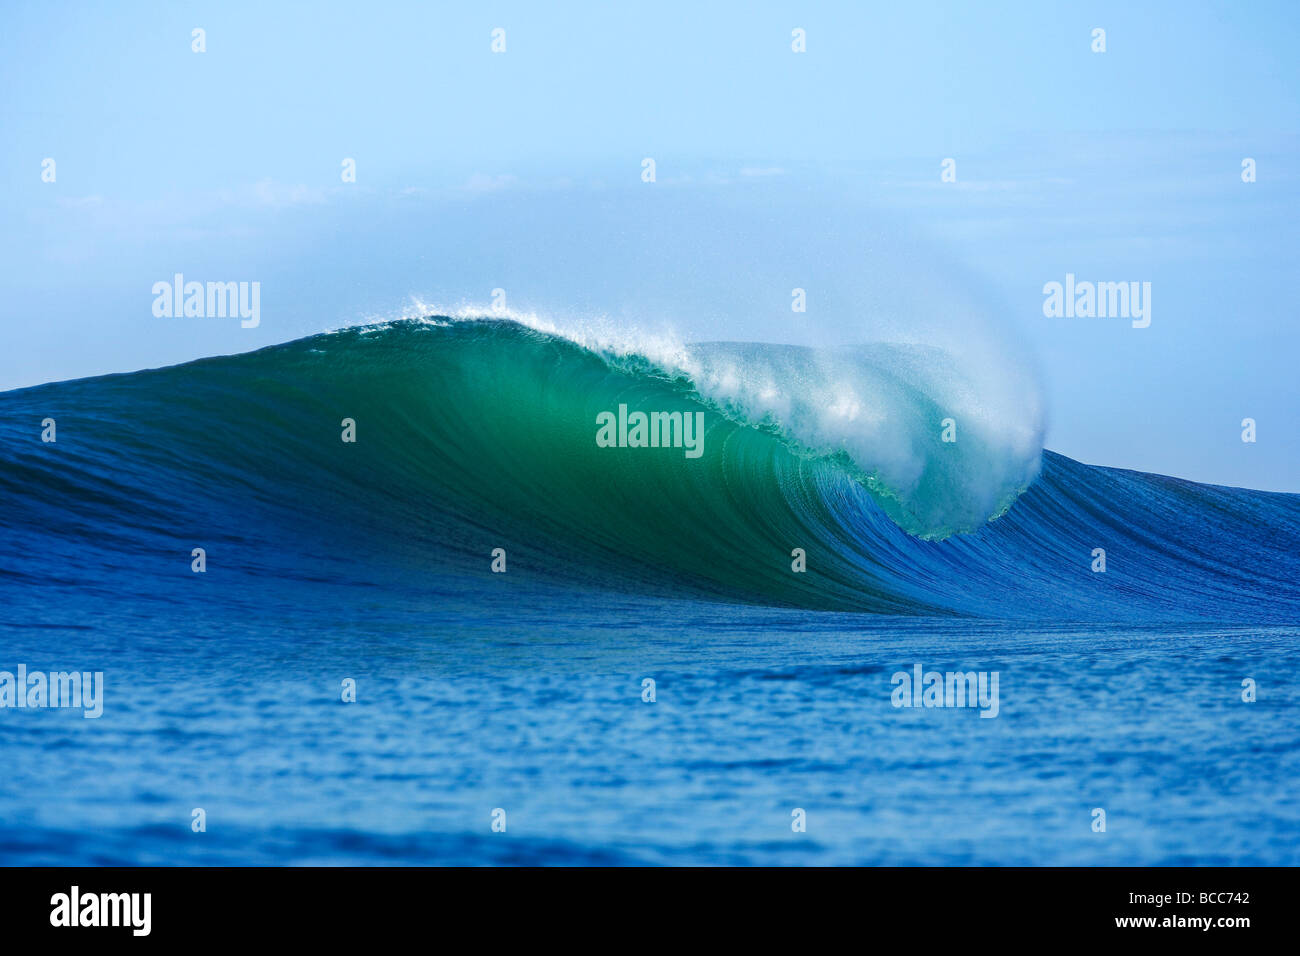 Breaking wave - Stock Image